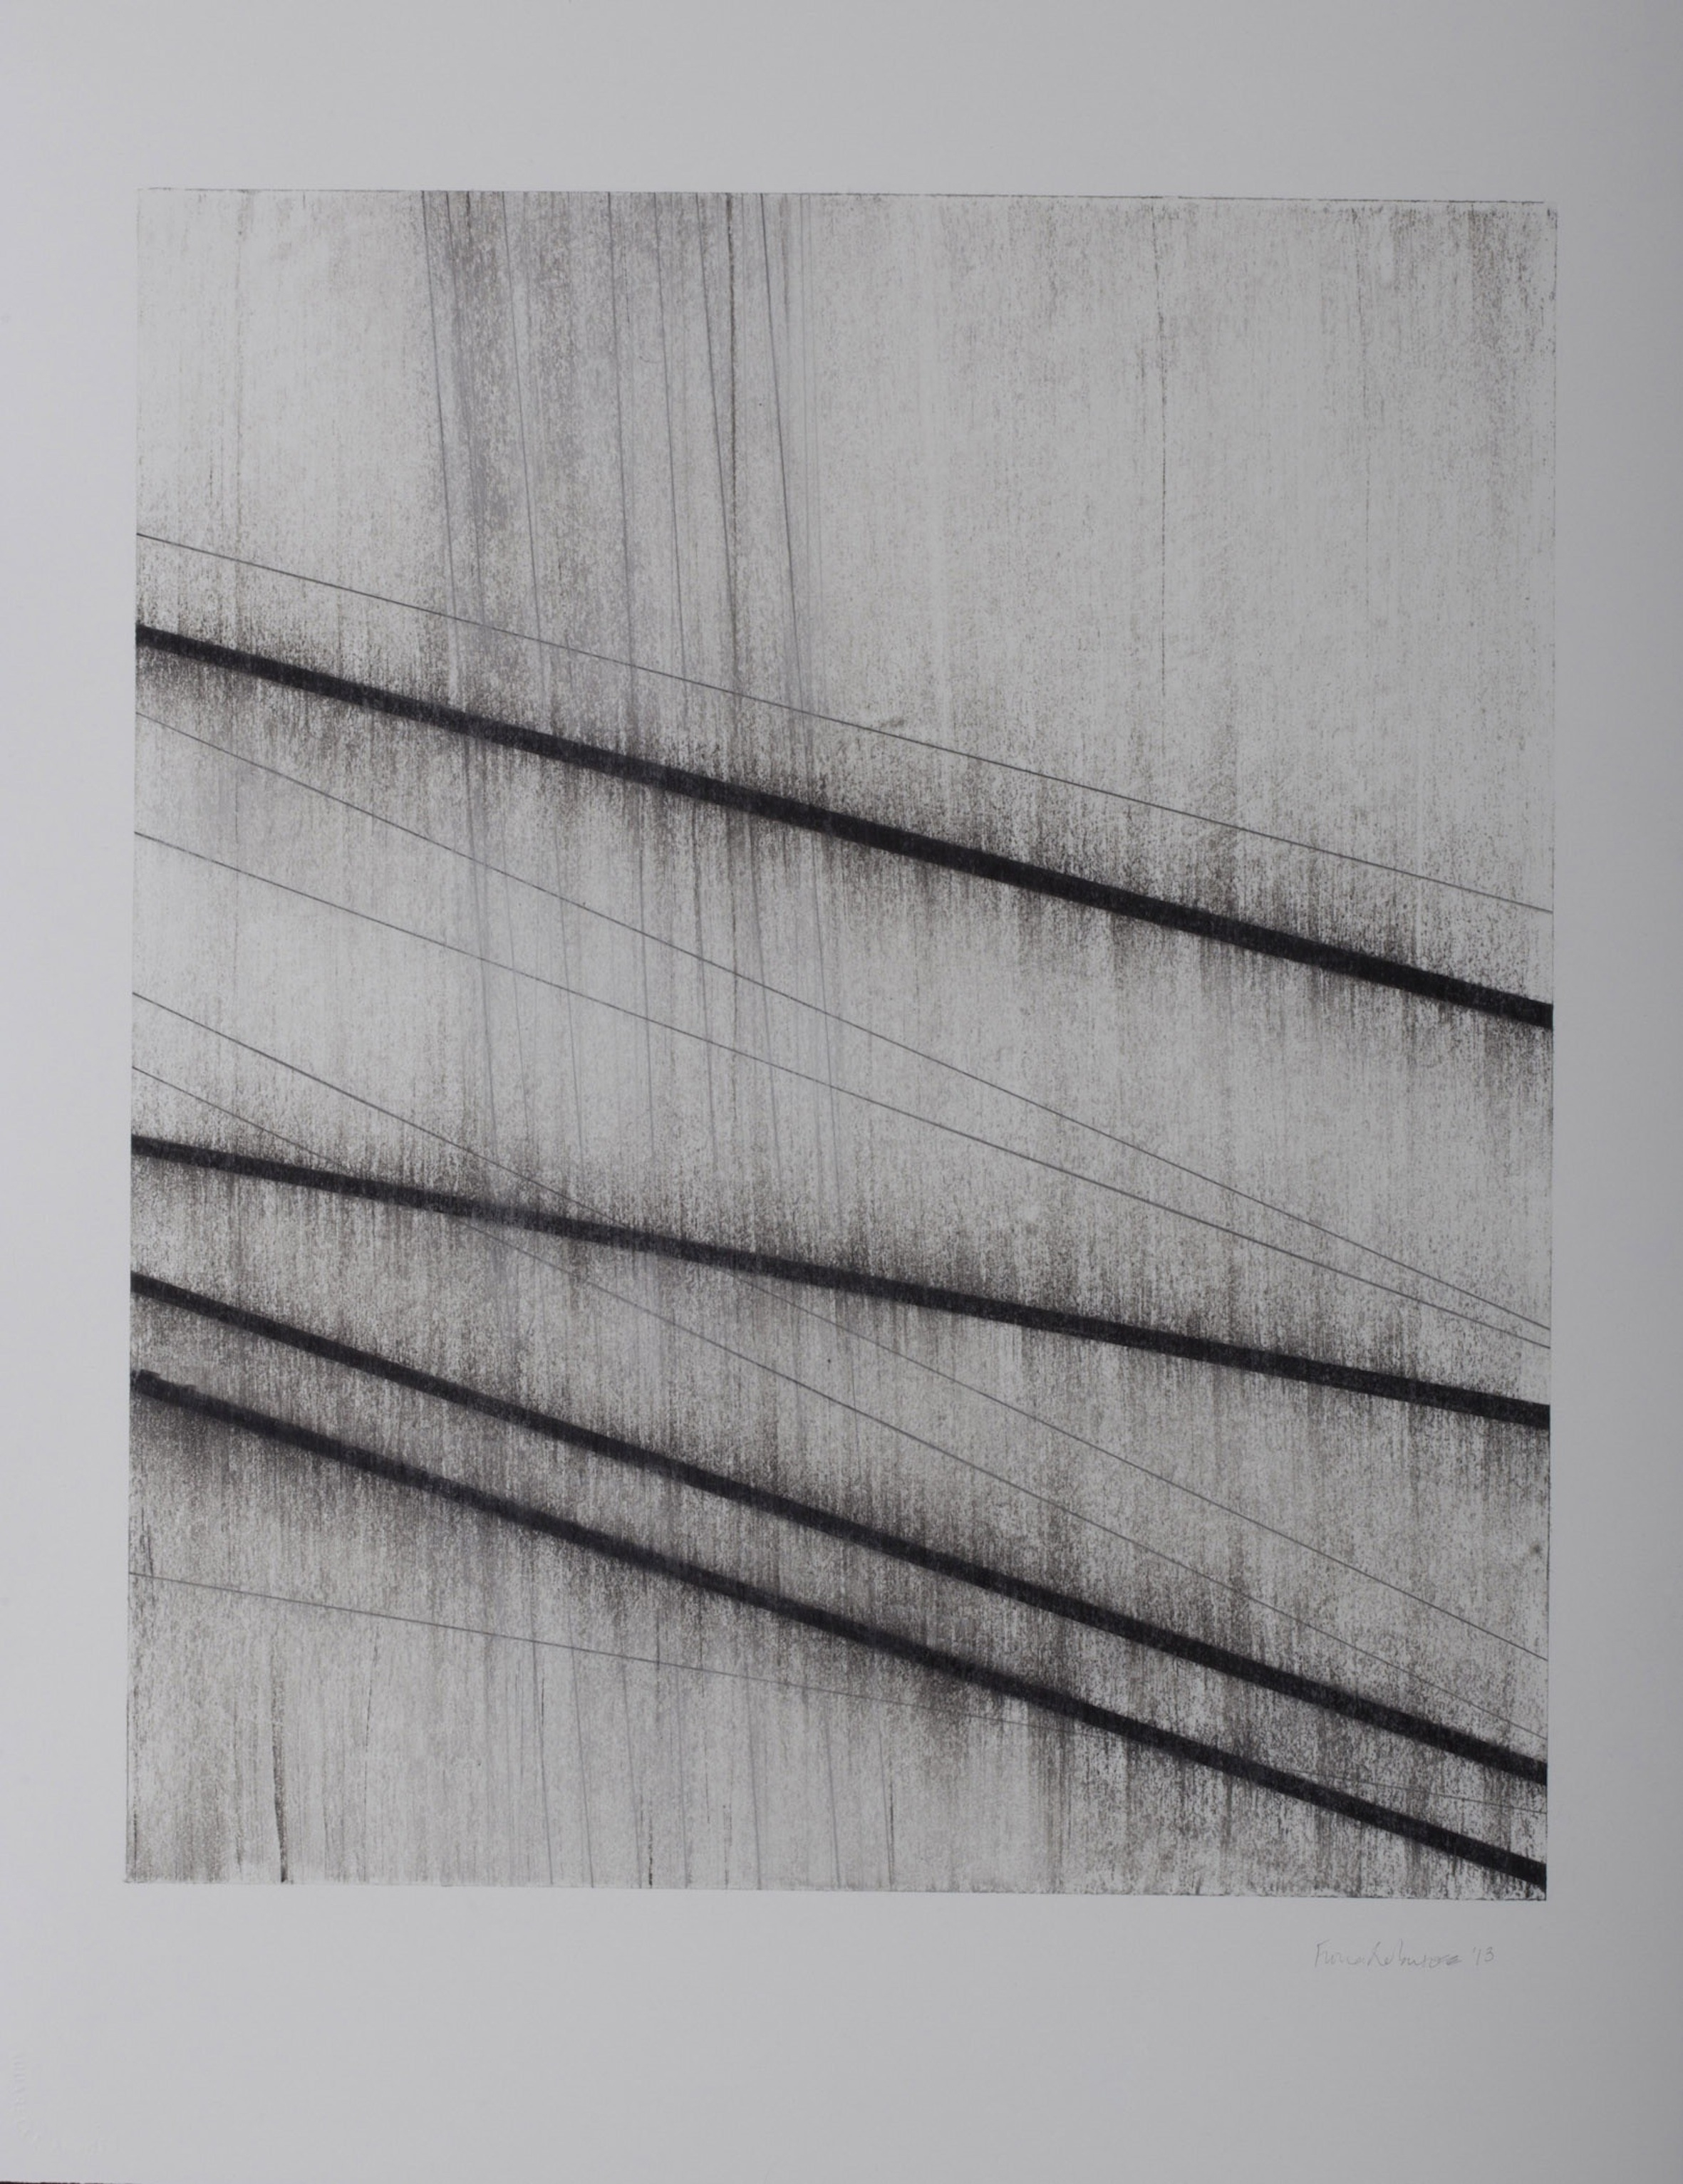 Partita 3, 2012, charcoal, graphite, chalk and wax on Arches HP 300g, 76 × 56 cm